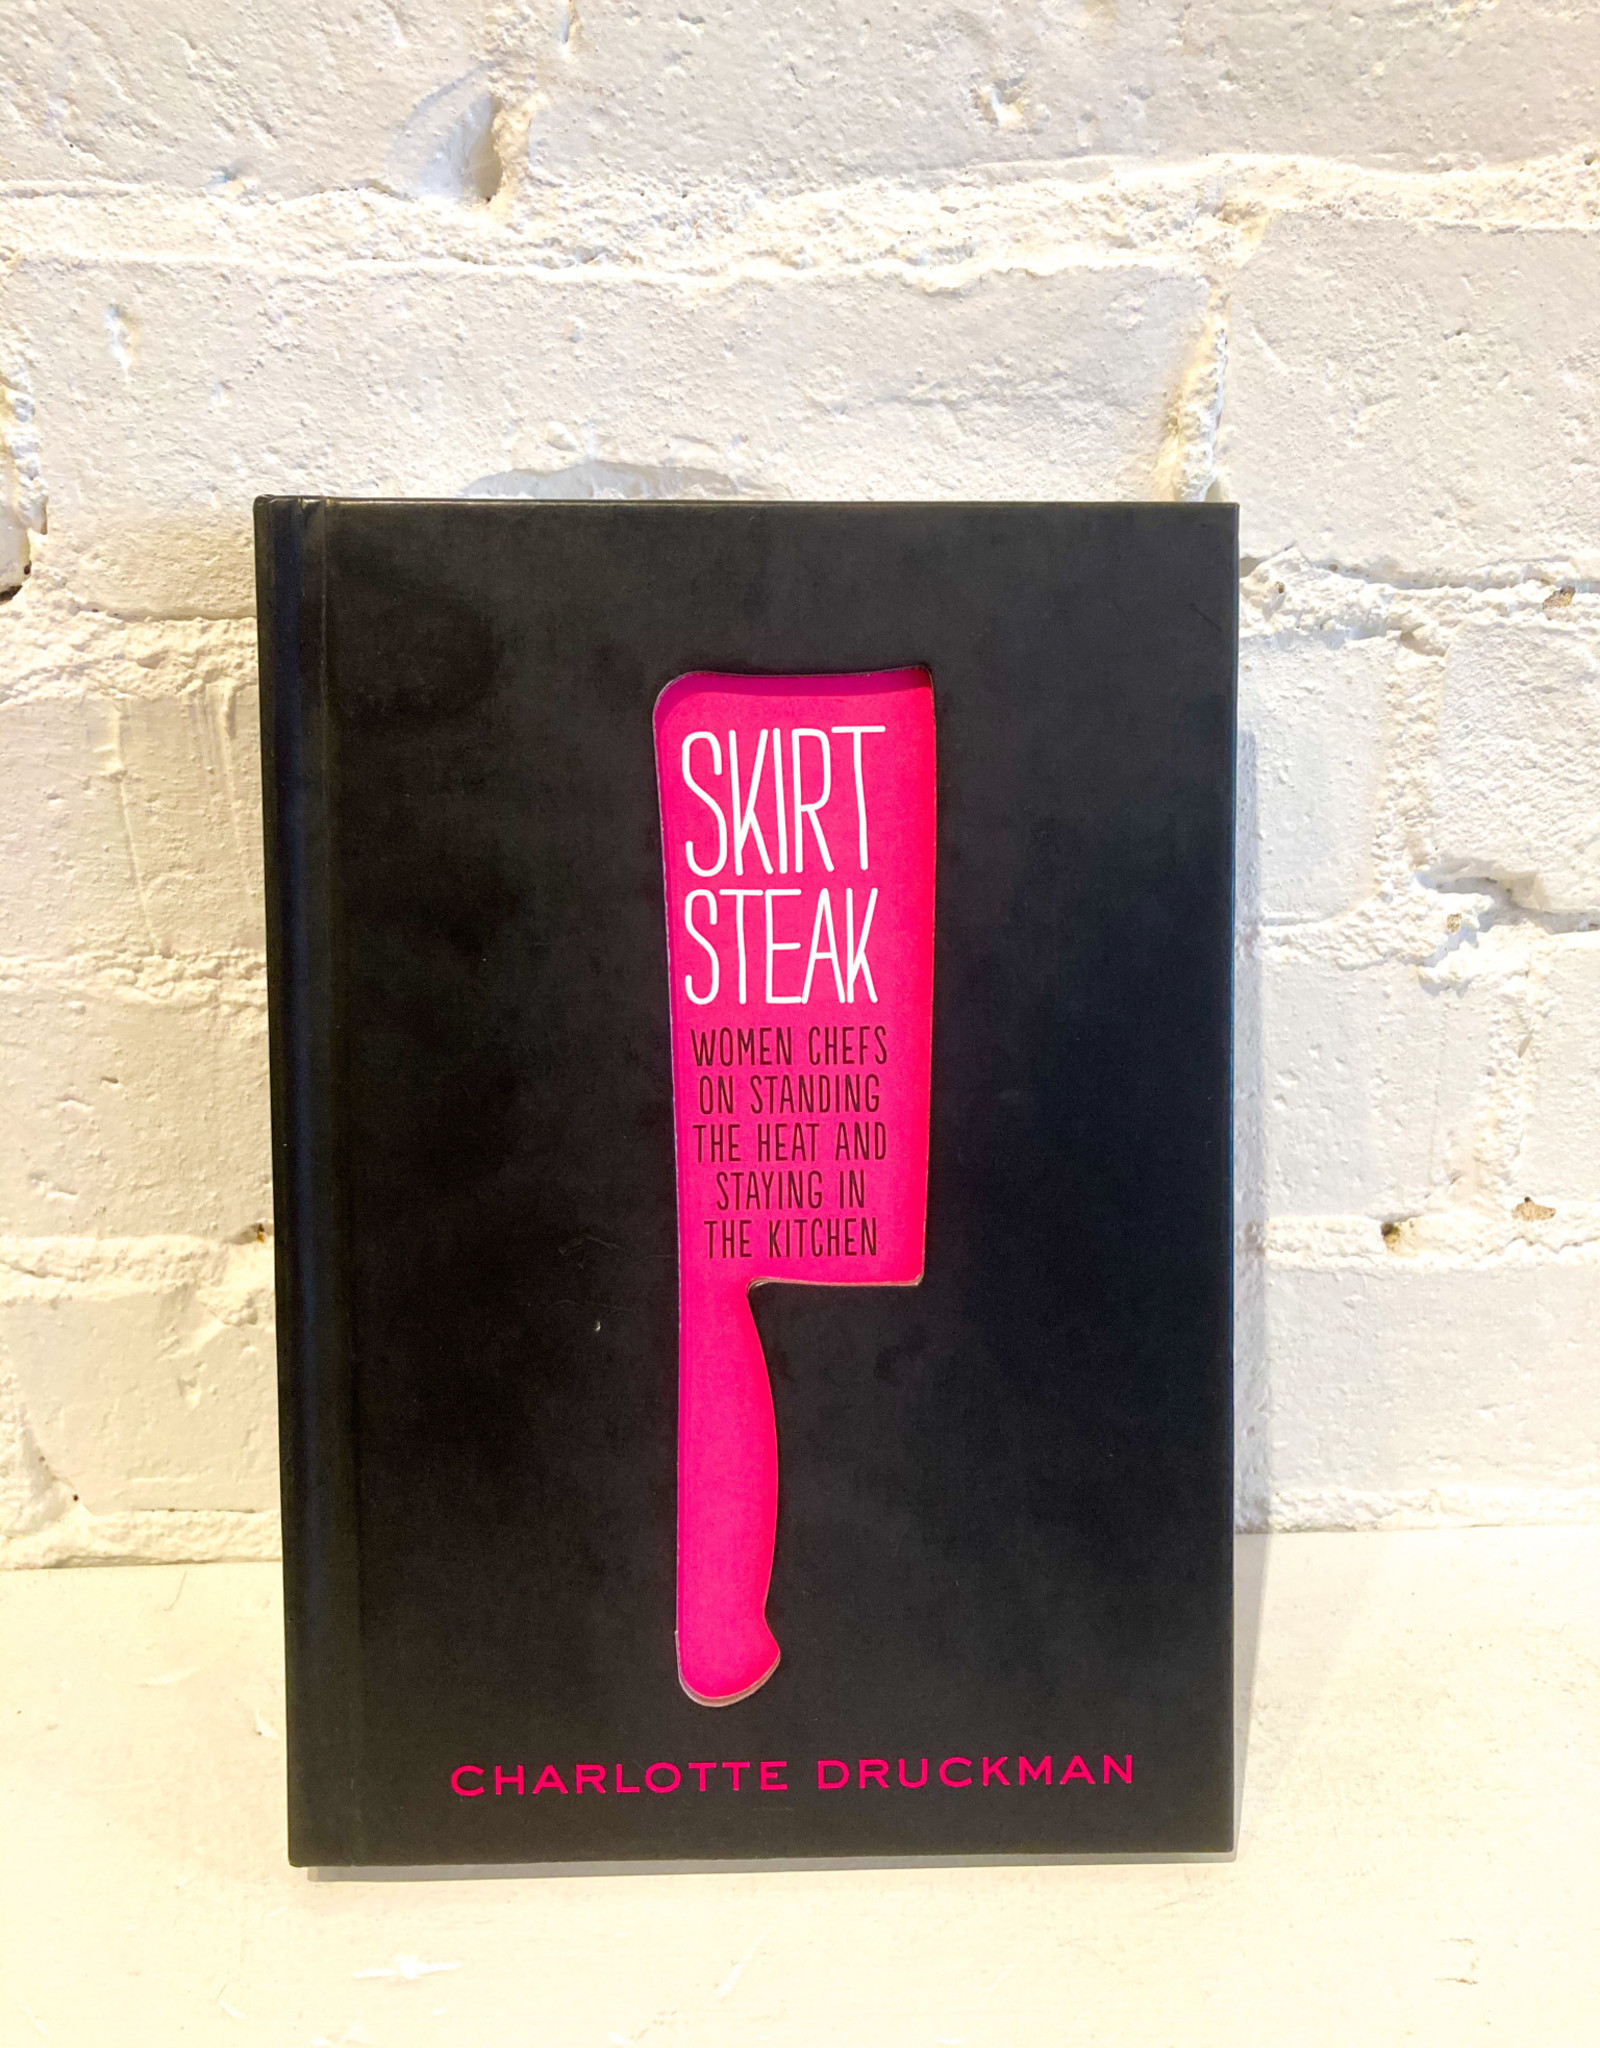 Skirt Steak: Women Chefs on Standing the Heat and Staying in the Kitchen by Charlotte Druckman